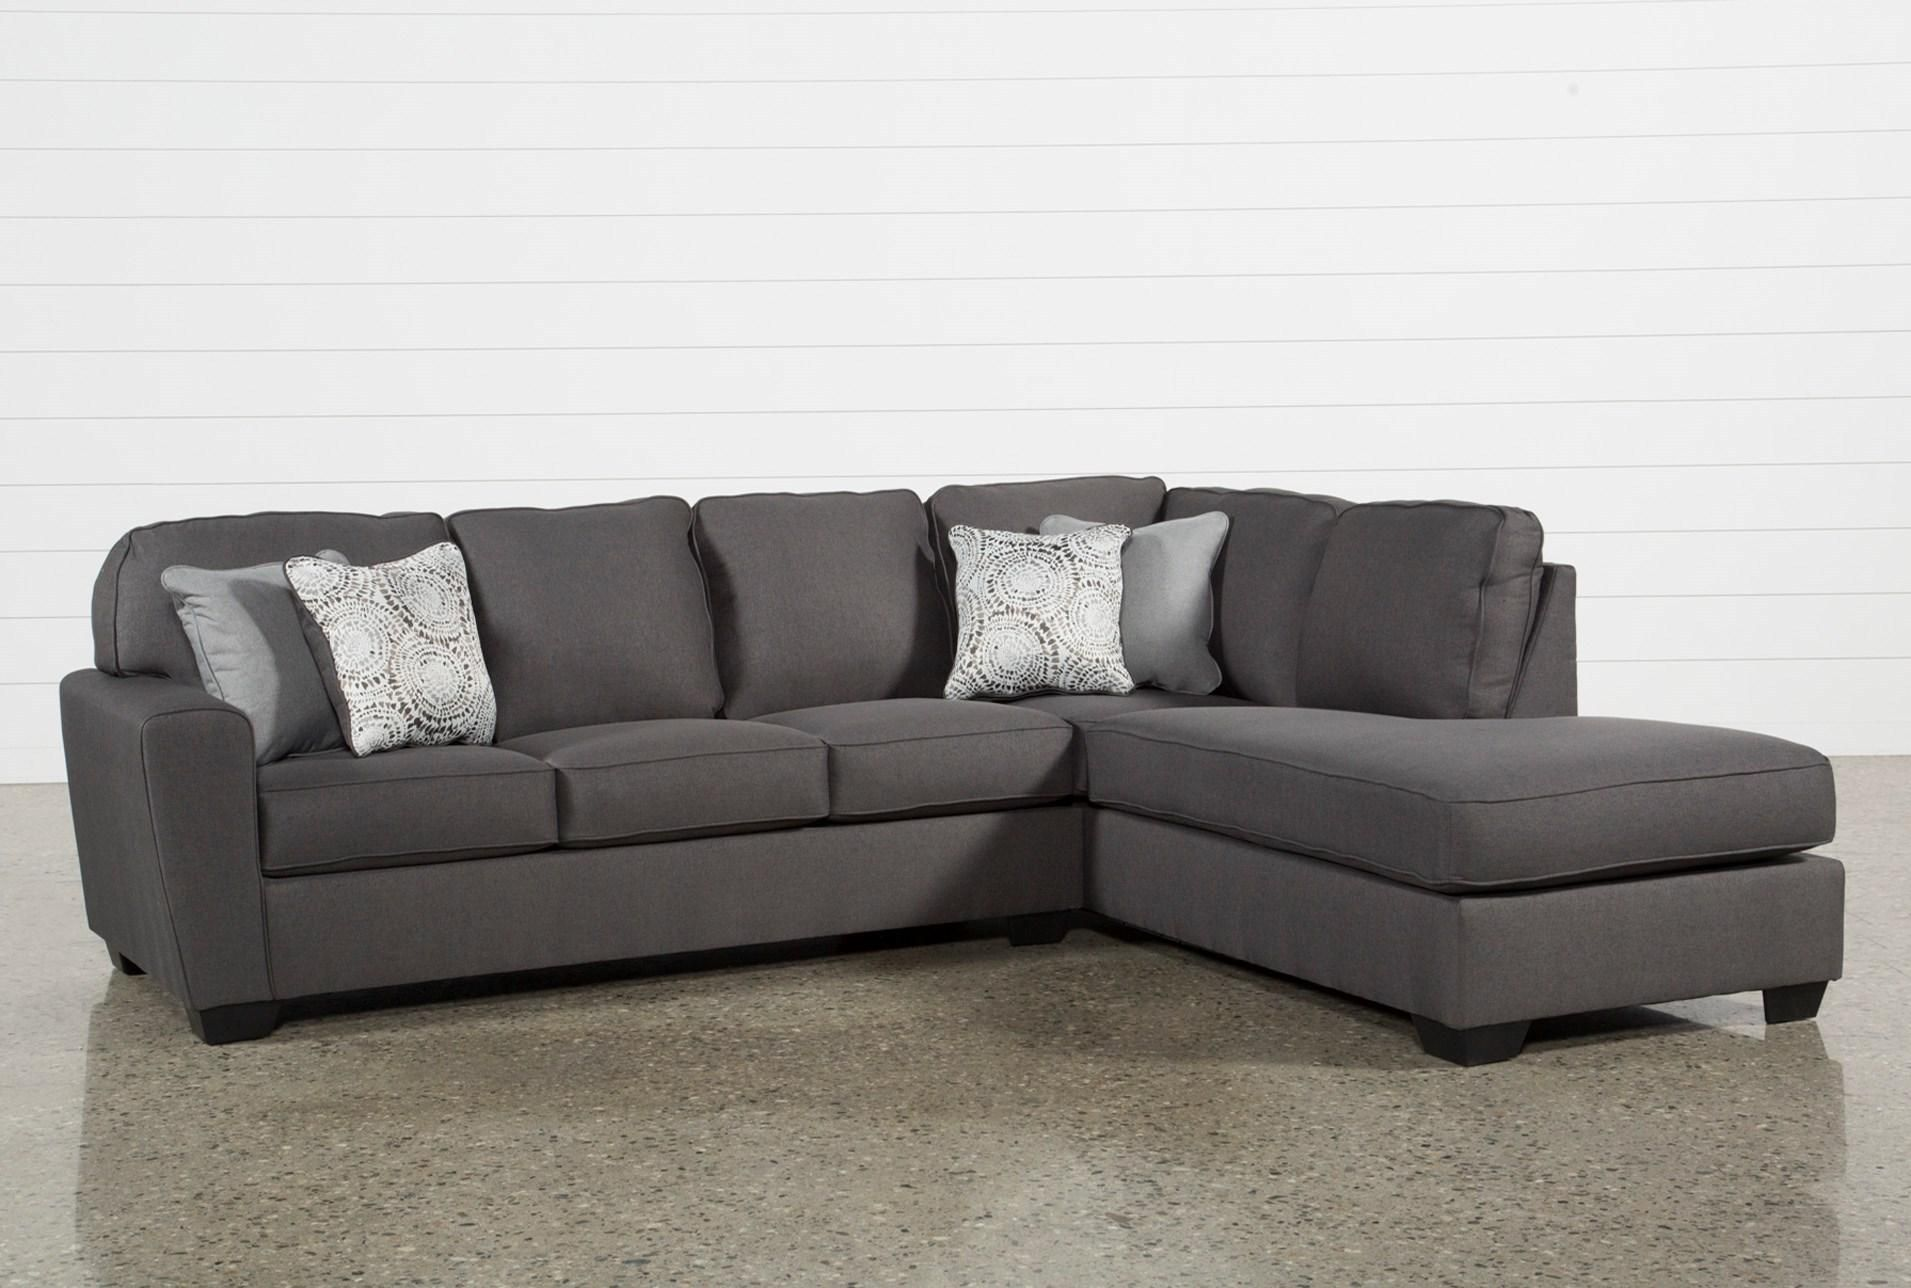 Sofascore Kayla Day Mcdade Graphite 2 Piece Sectional W Raf Chaise Livingroom Grey